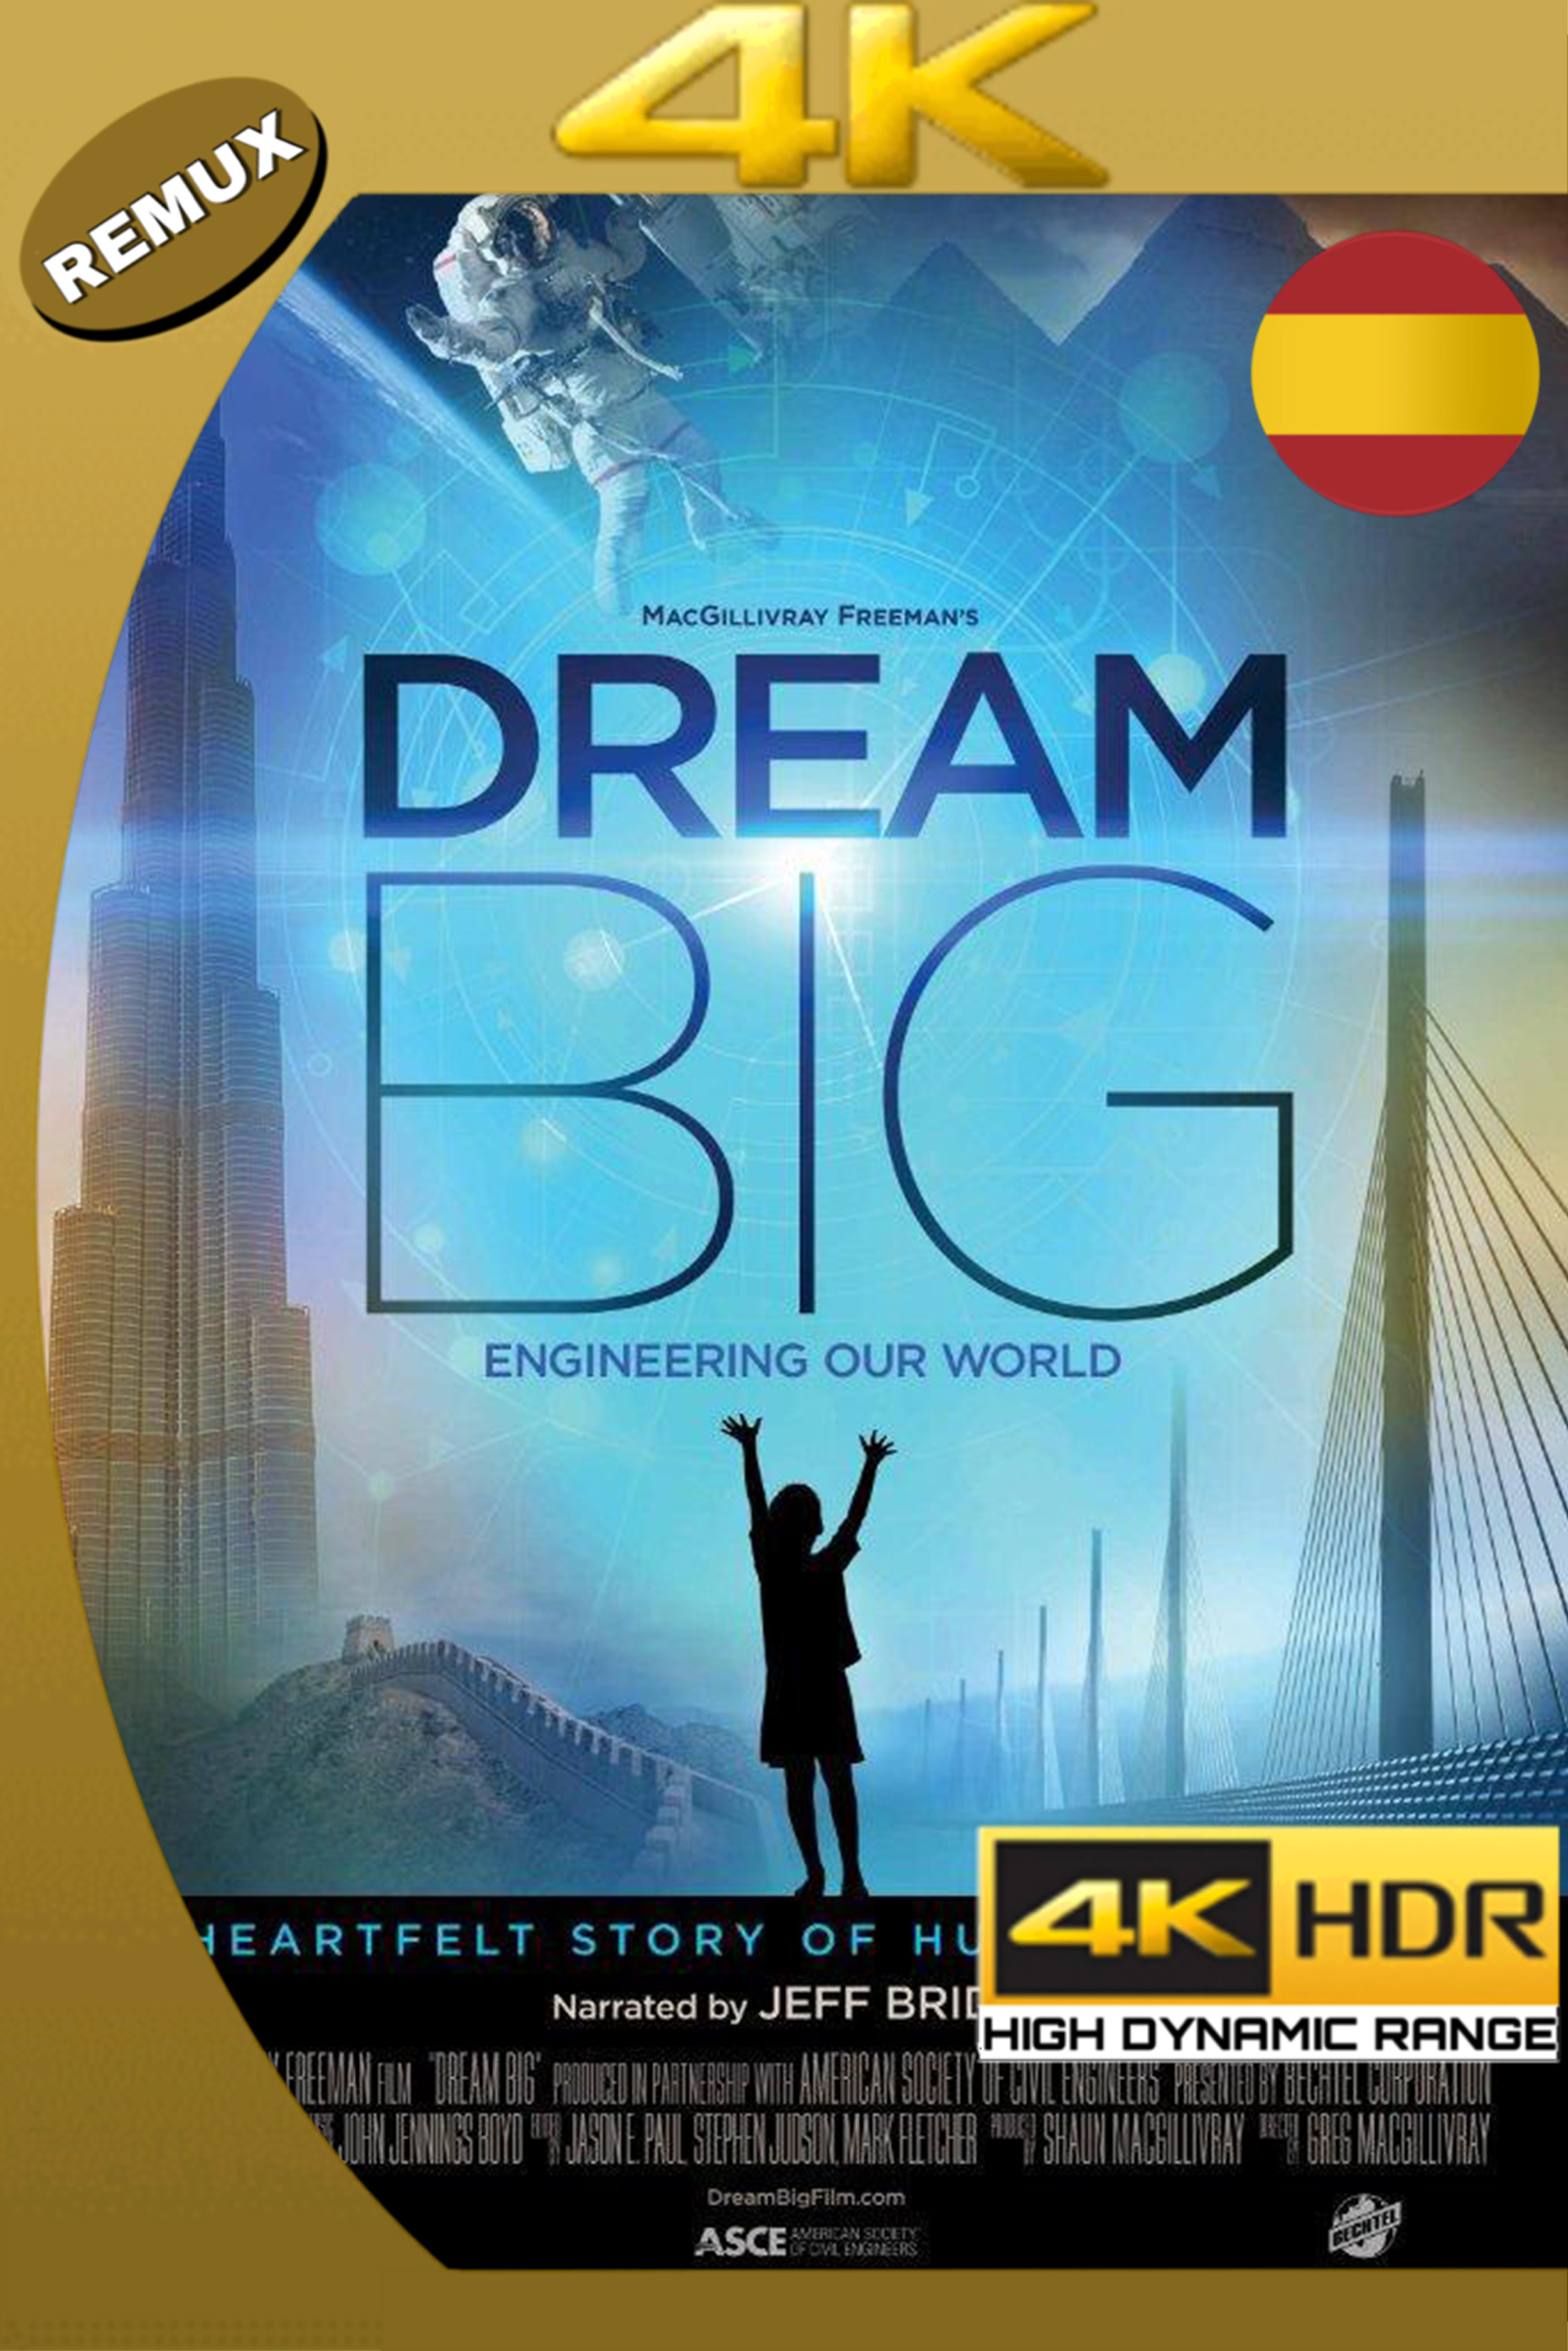 DREAM BIG ENGINEERING OUR WORLD 2017 CAS-ING DOCU 2160P BDREMUX HDR 18GB.mkv